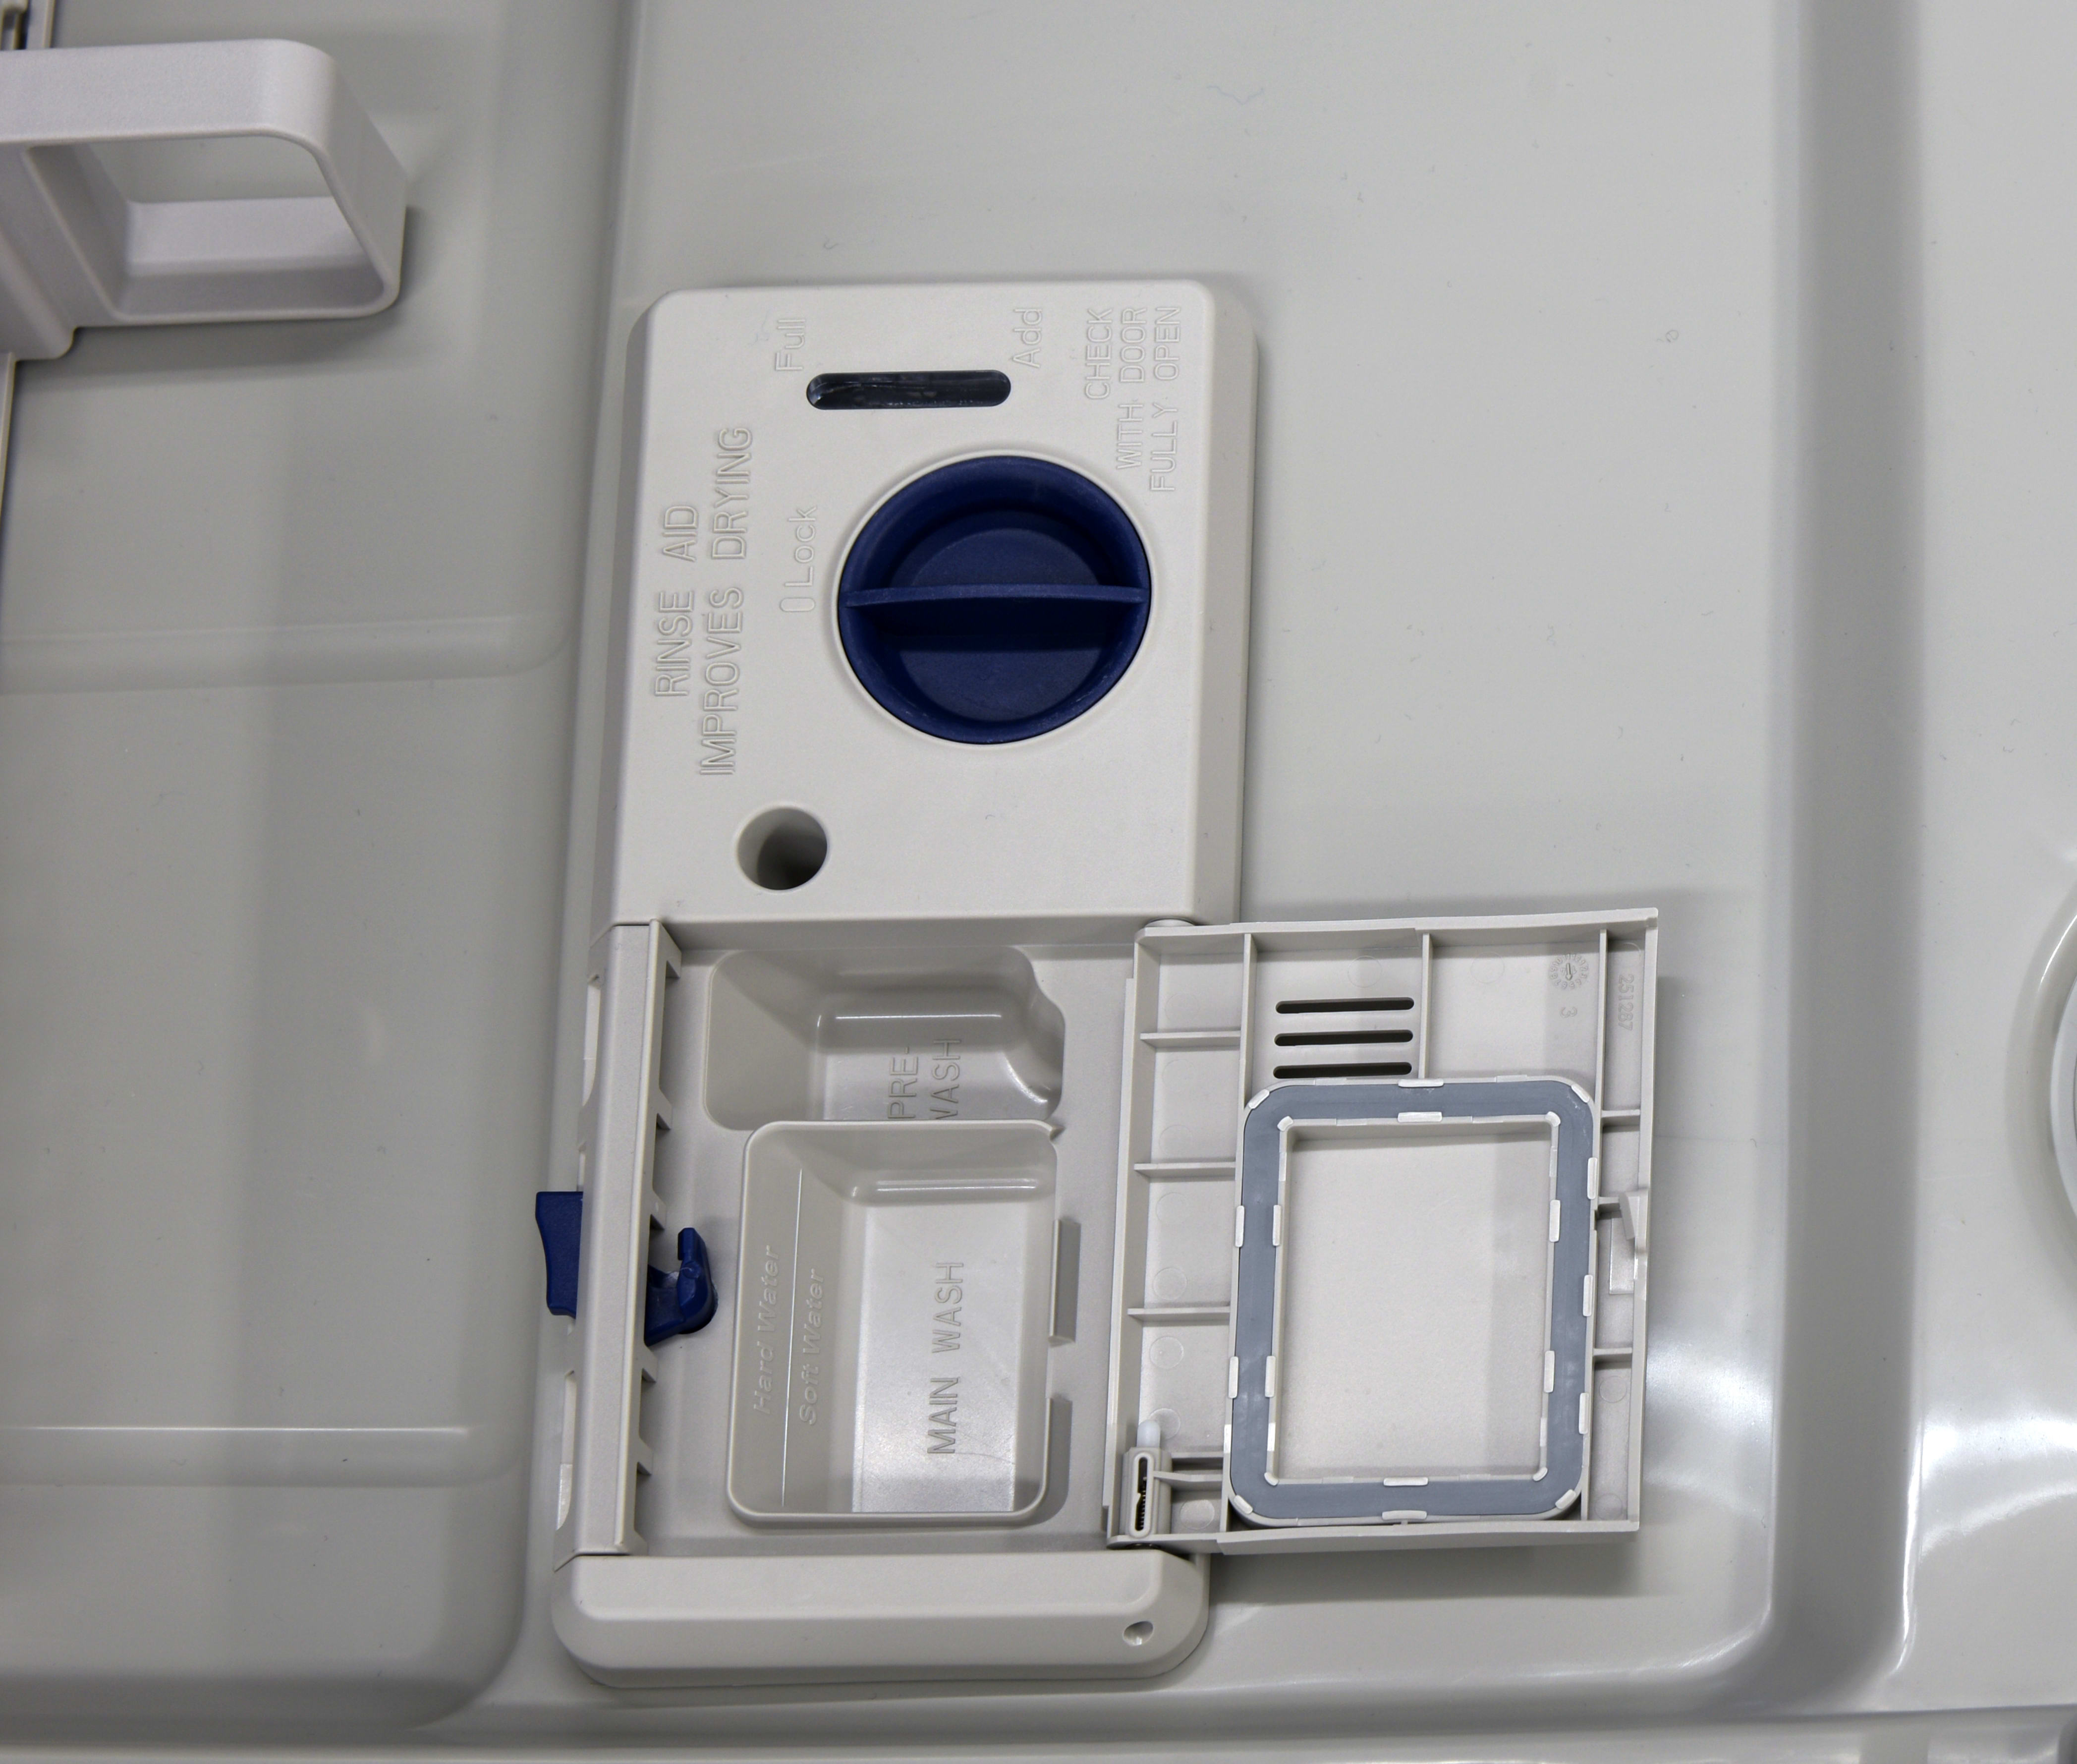 Whirlpool WDF540PADM rinse aid and detergent dispenser